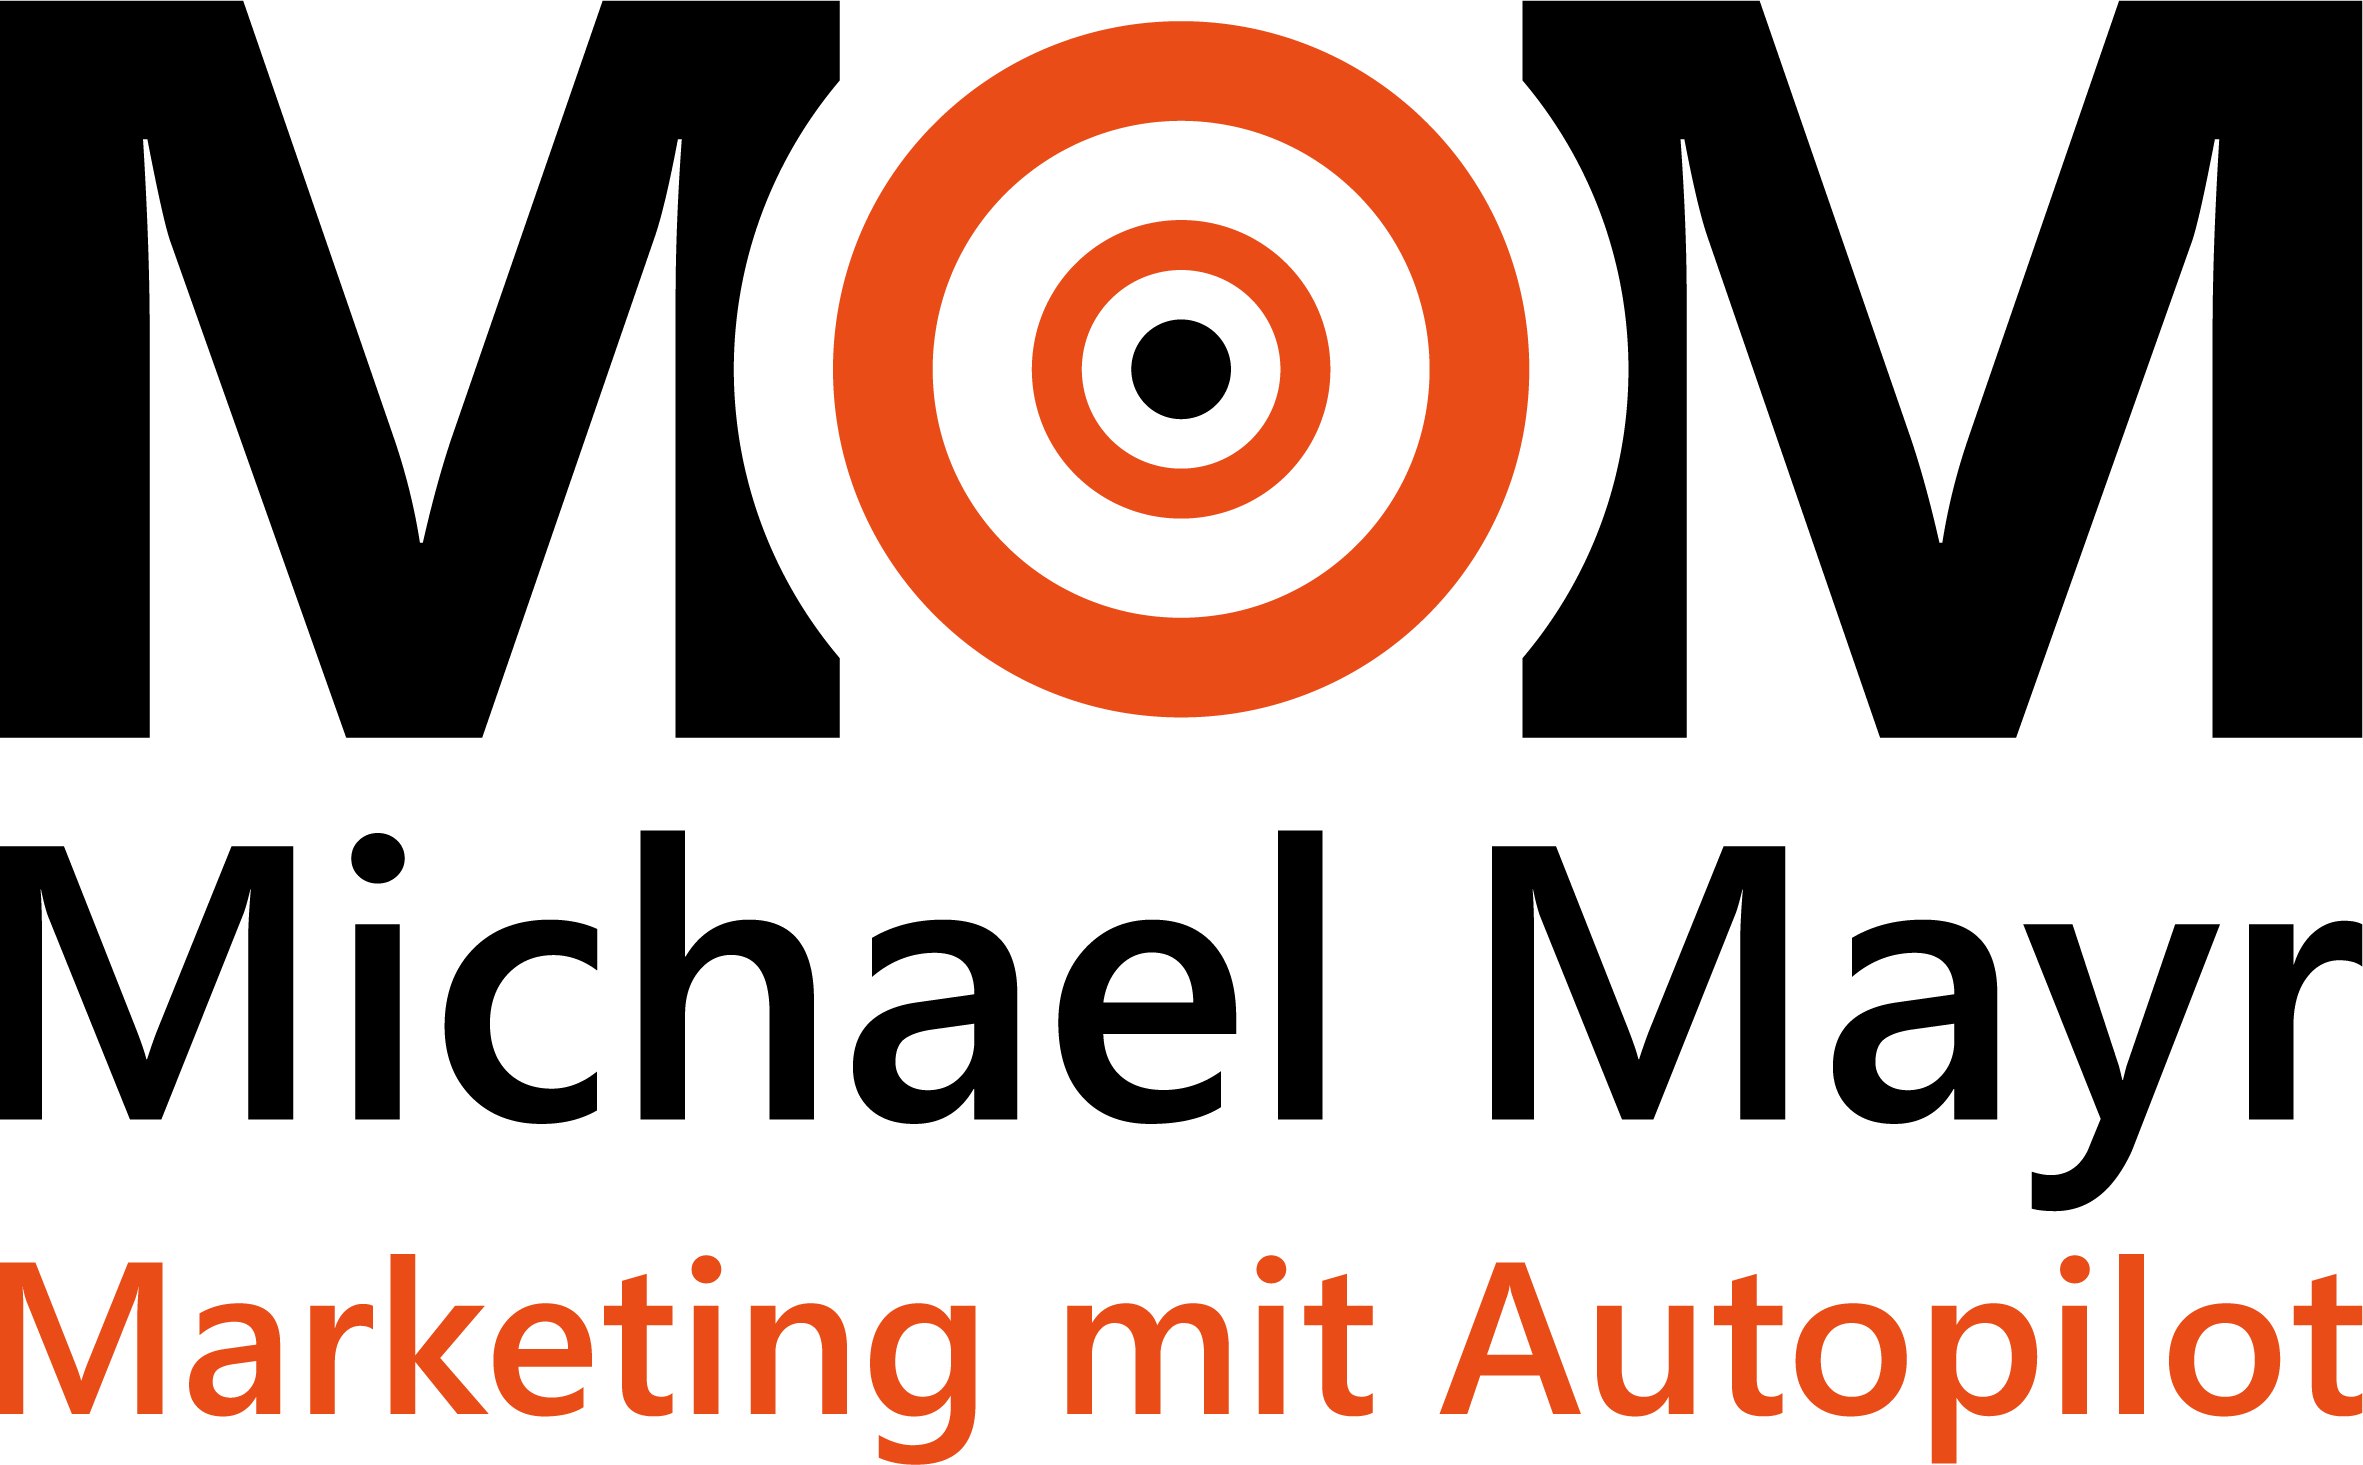 Marketing mit Autopilot